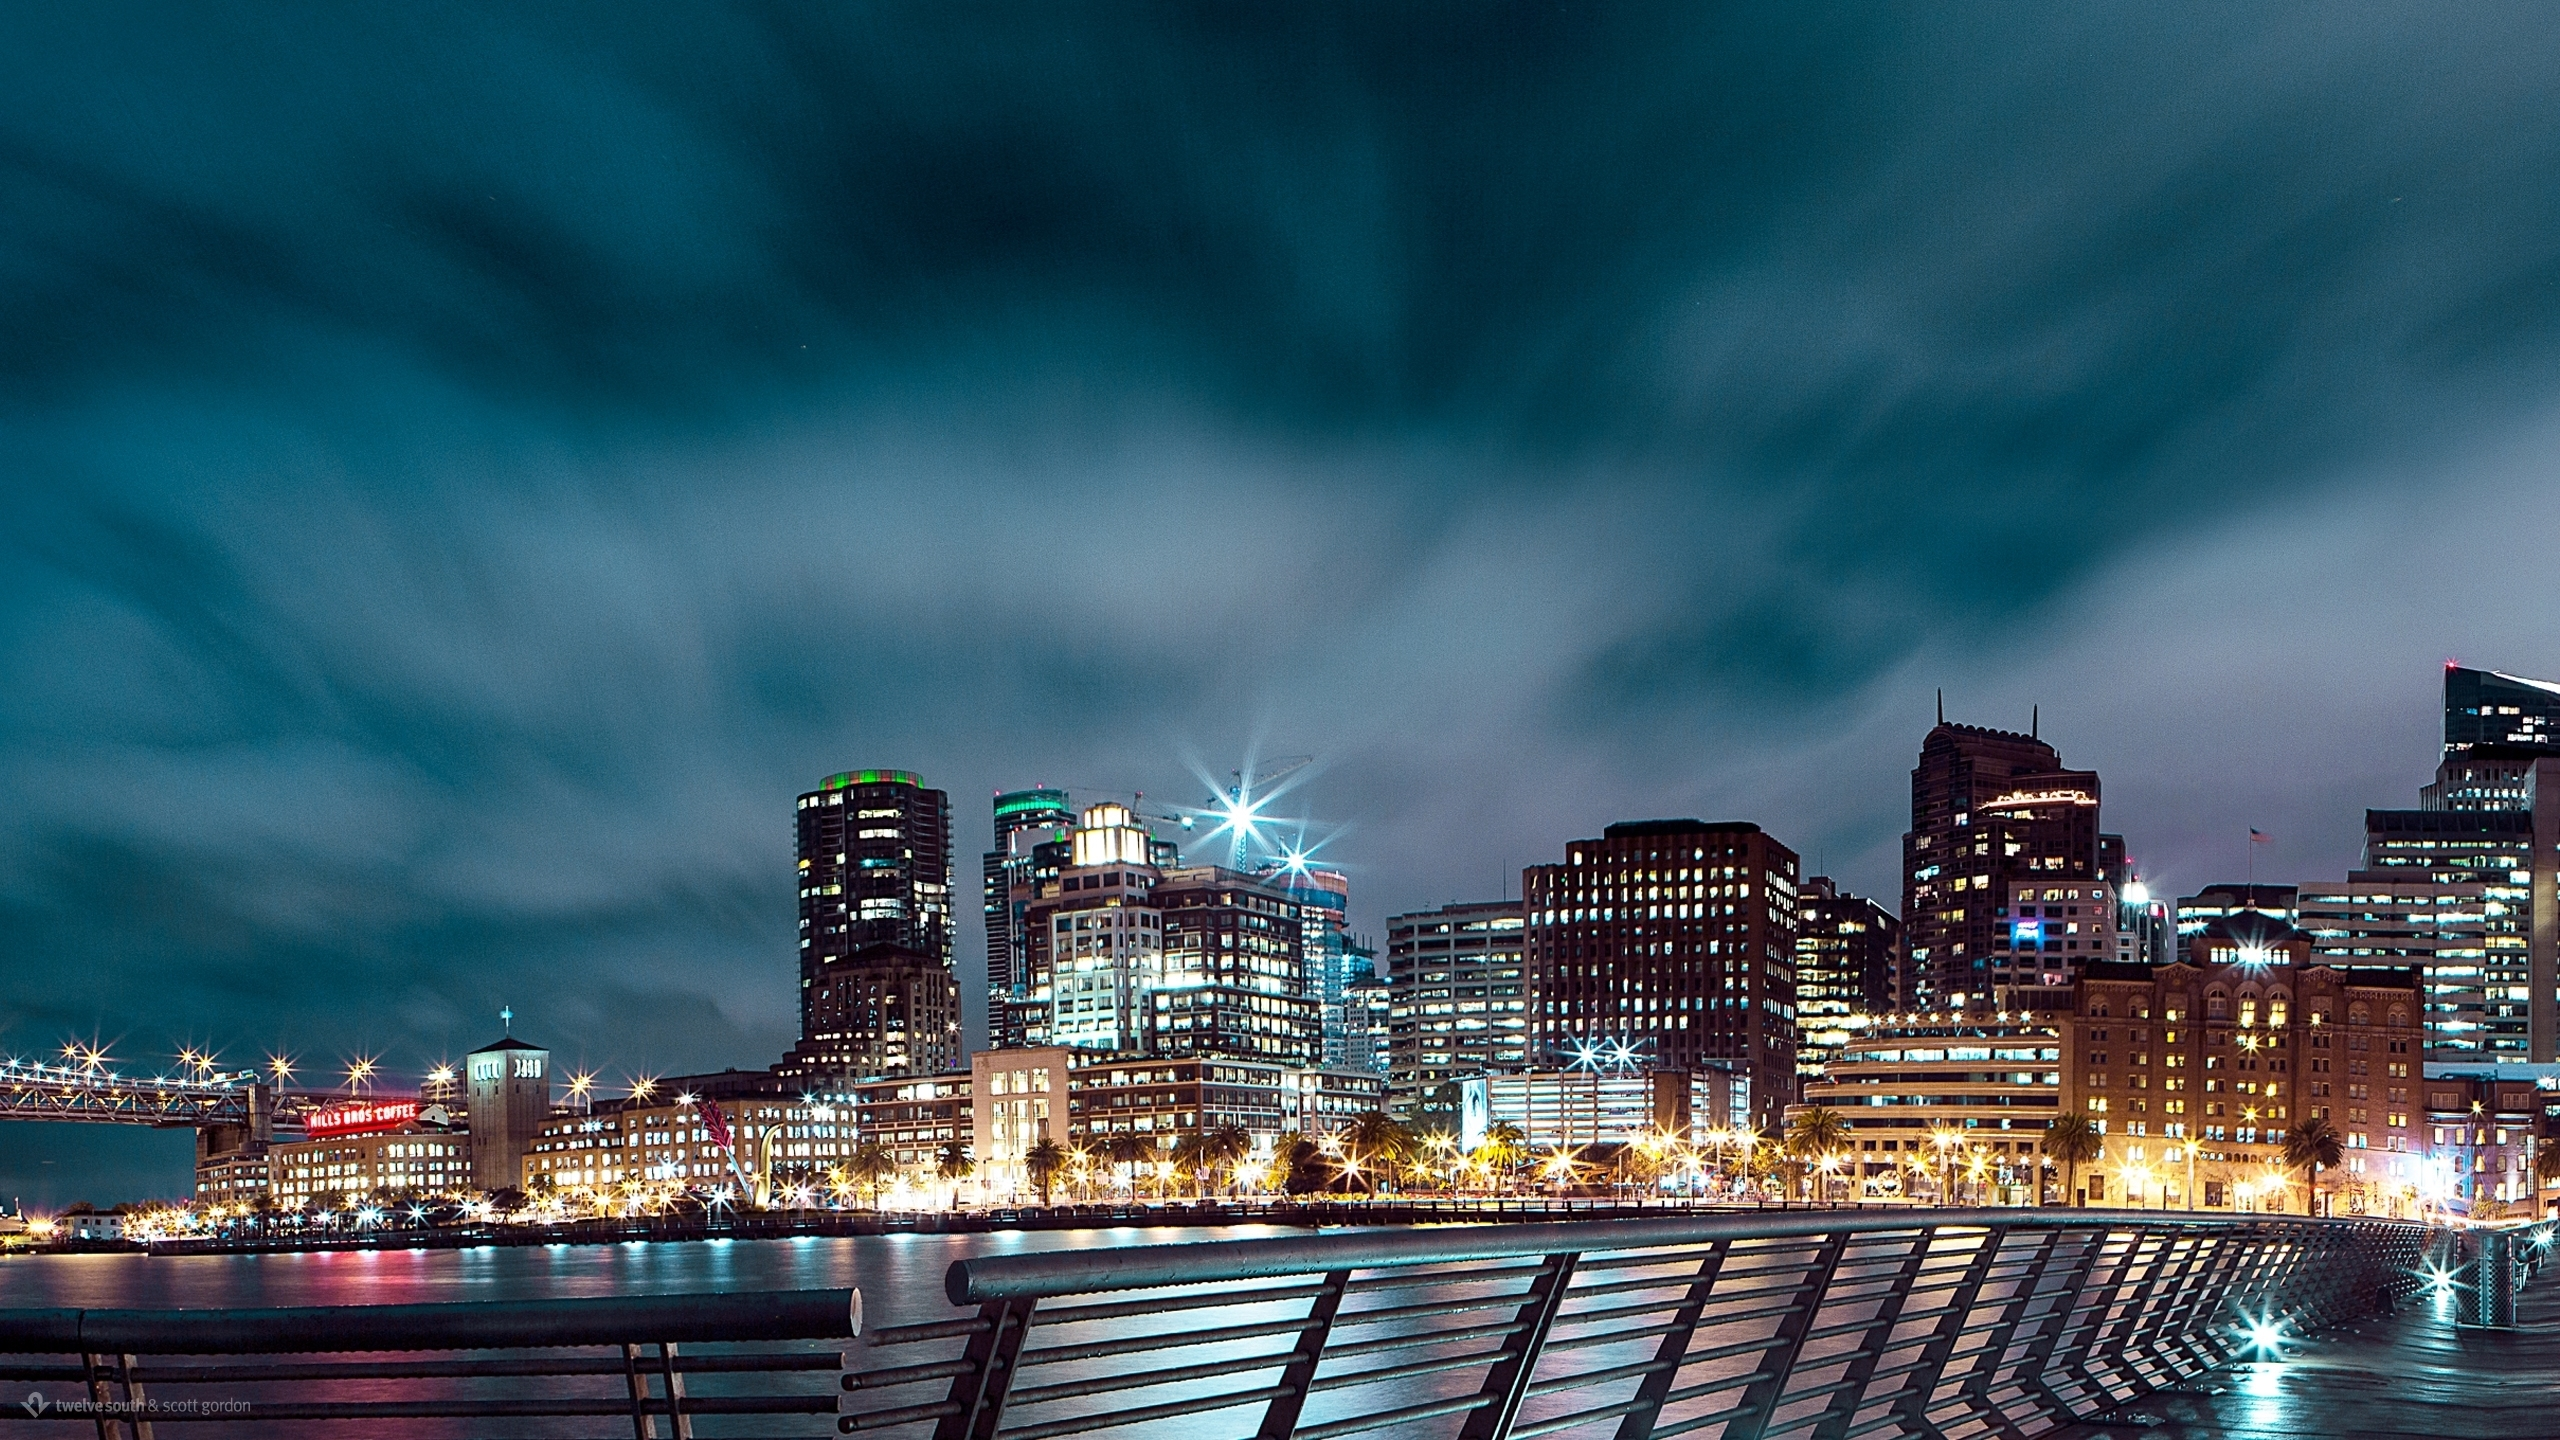 San Francisco Nightscape wallpaper